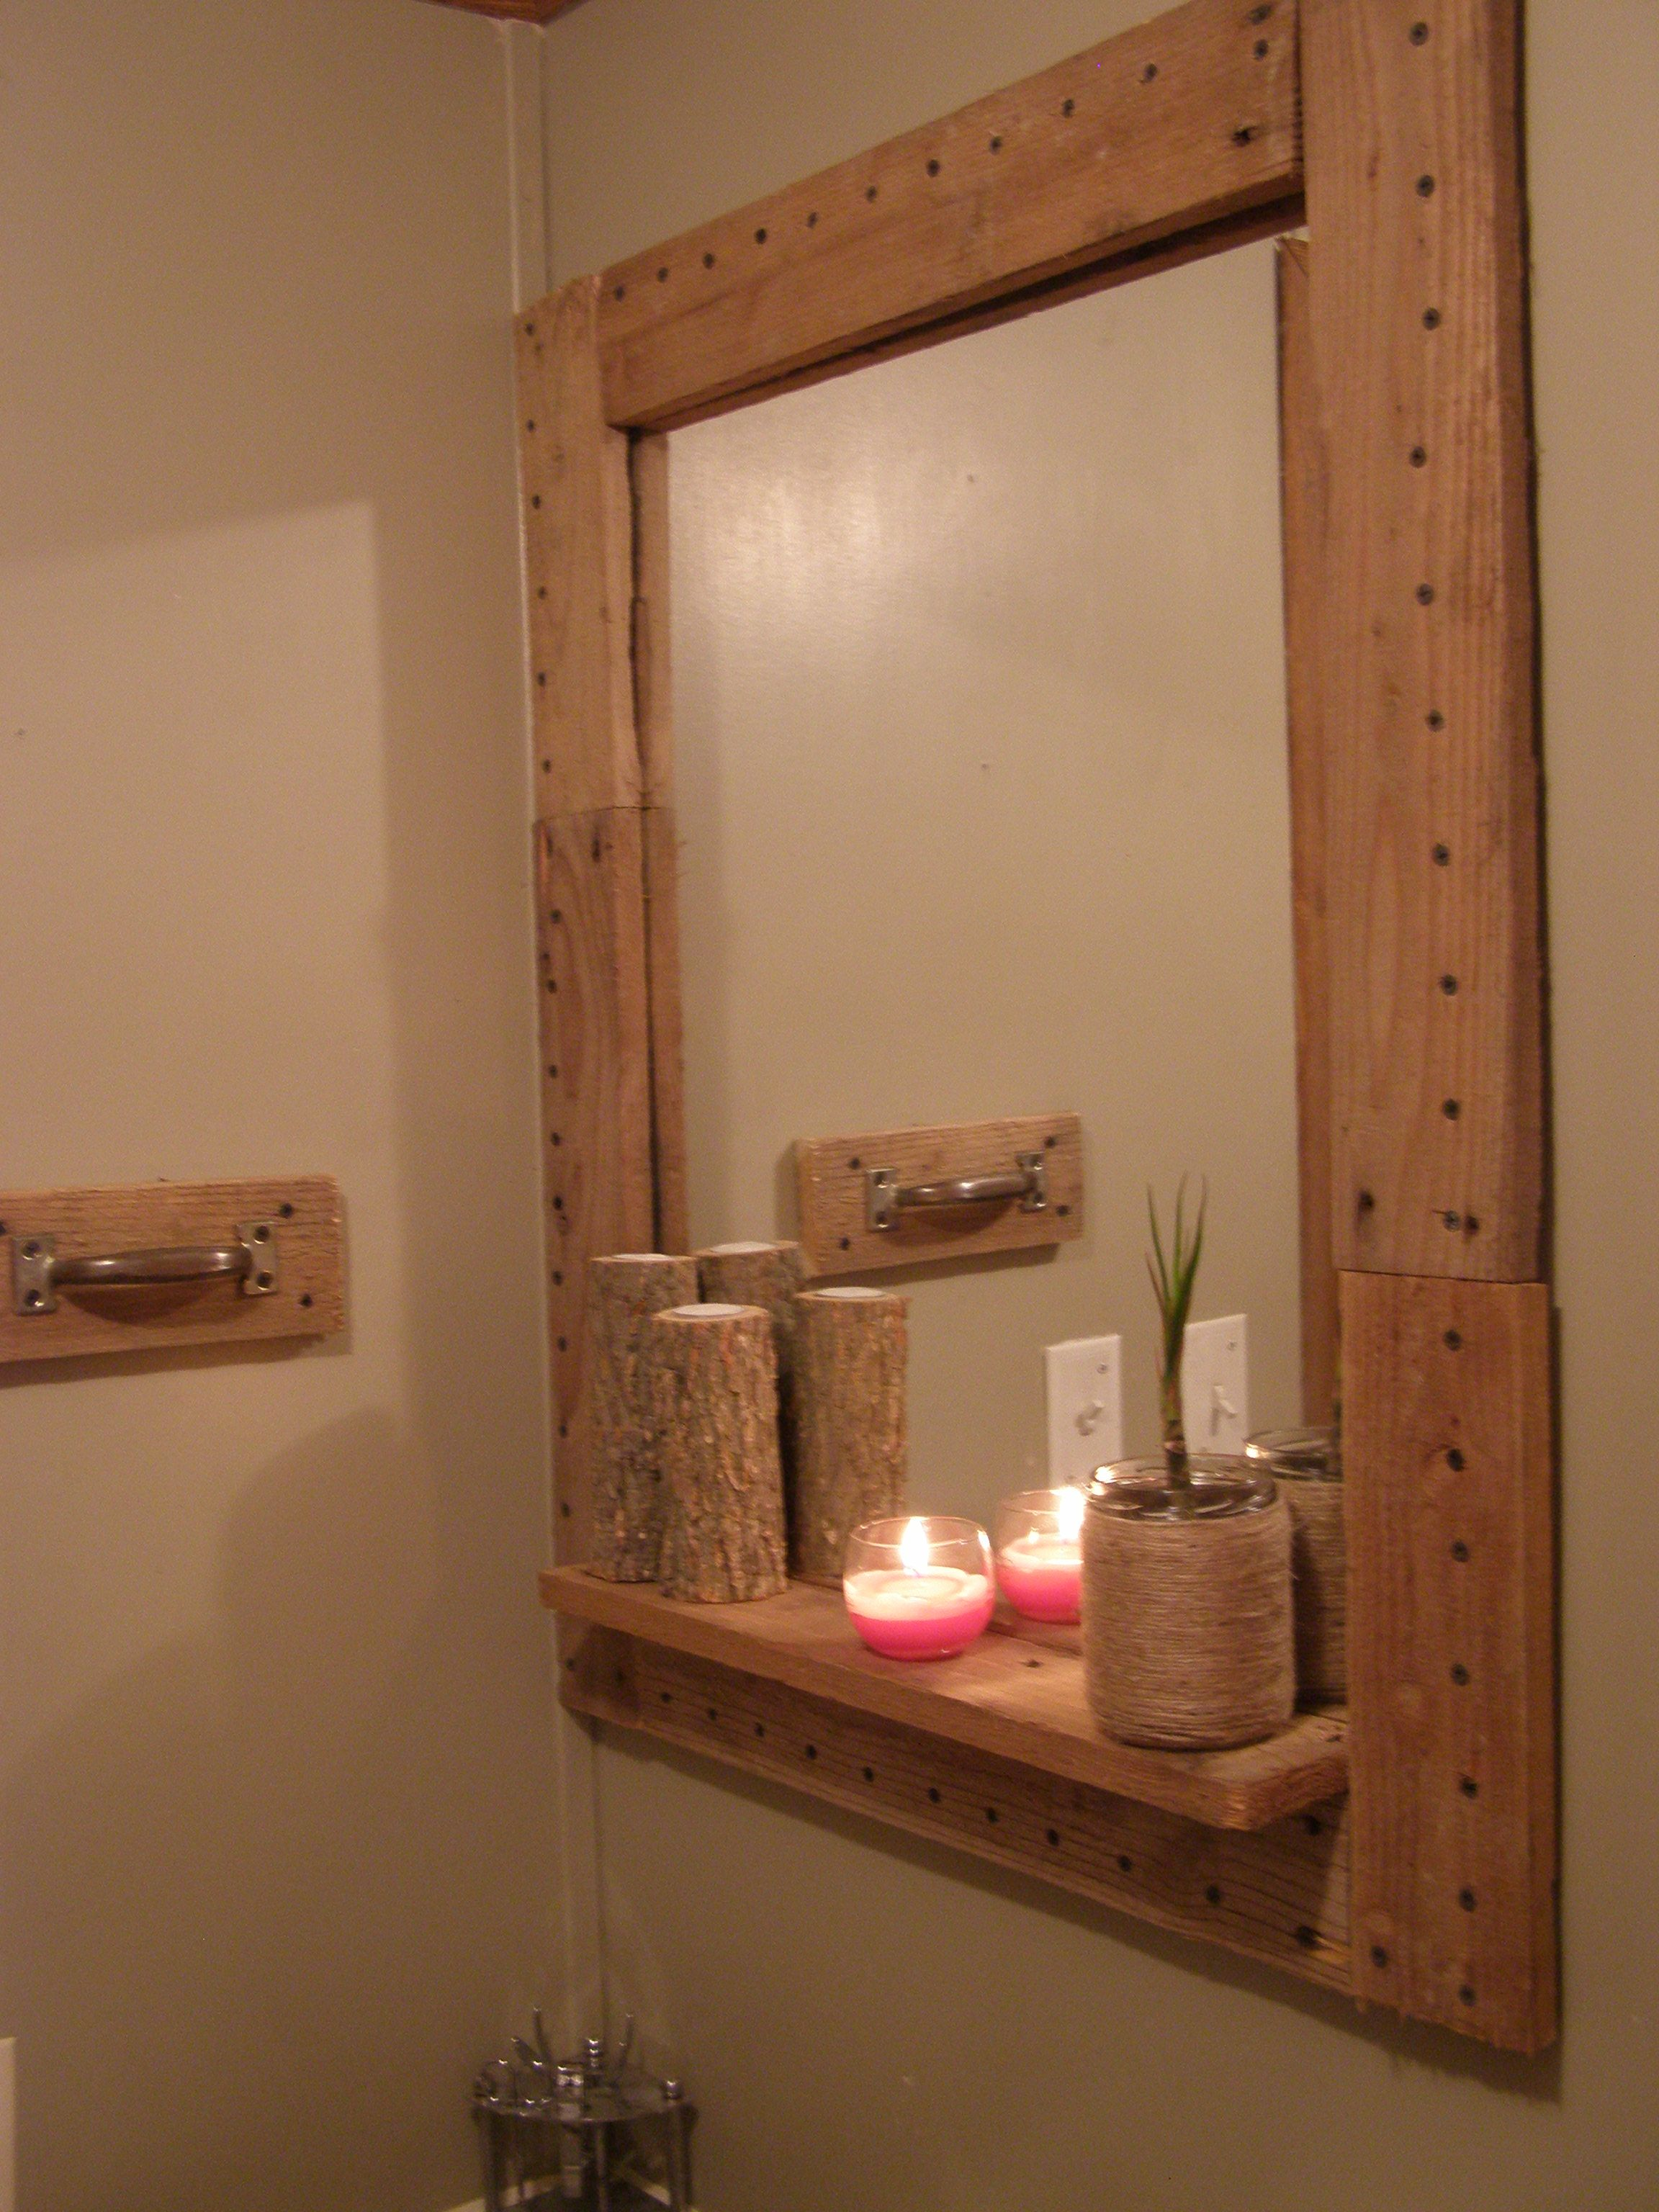 Framed My Bathroom Mirror With Pallets, The Towel Hanger Is A Piece Of  Pallet And